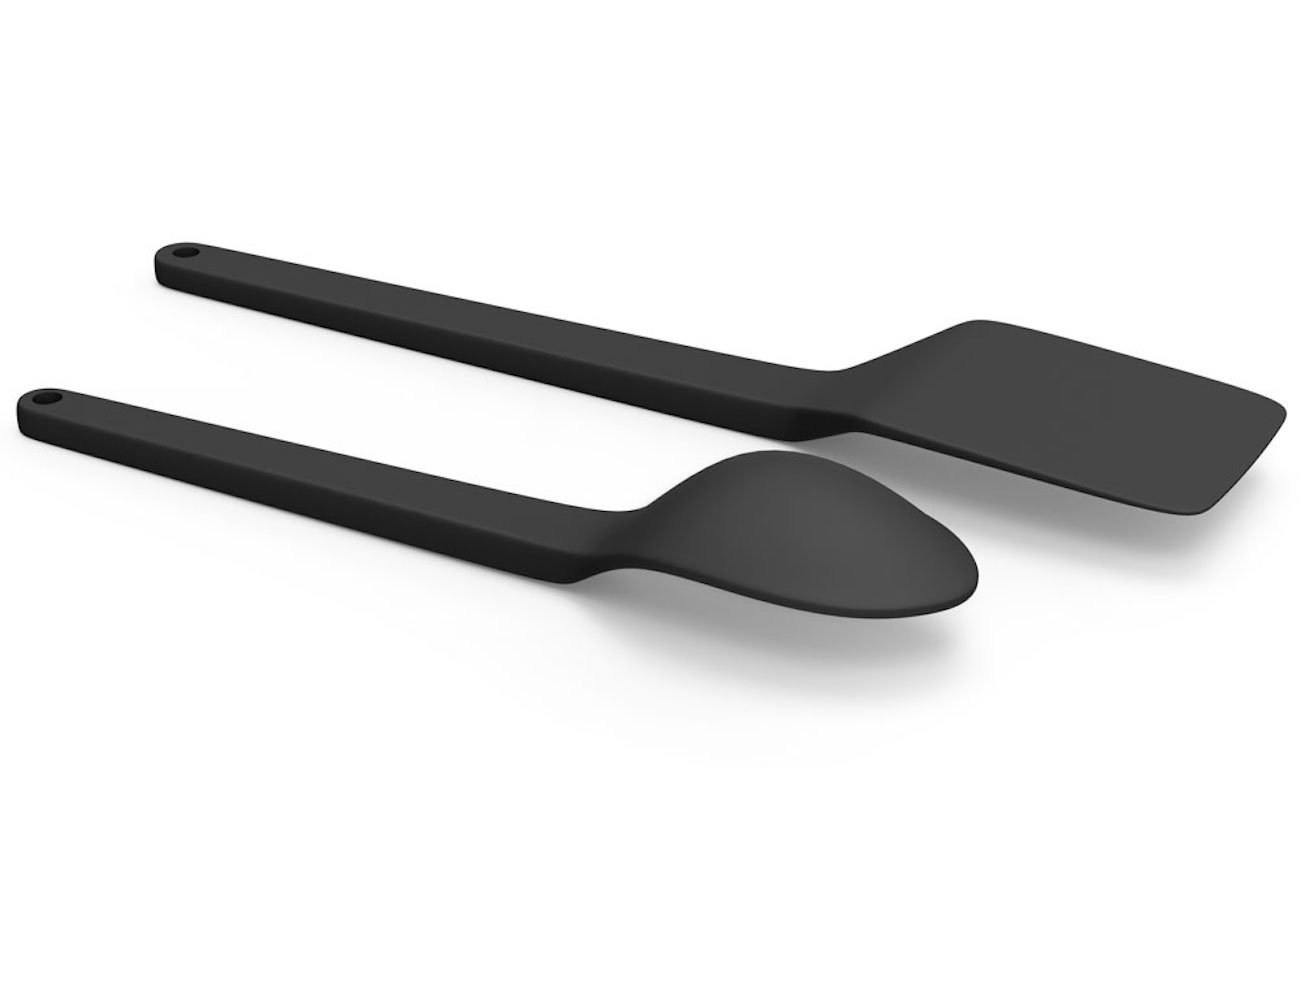 Cantilever Cooking Utensils – Hygienic Solution for Your Kitchen